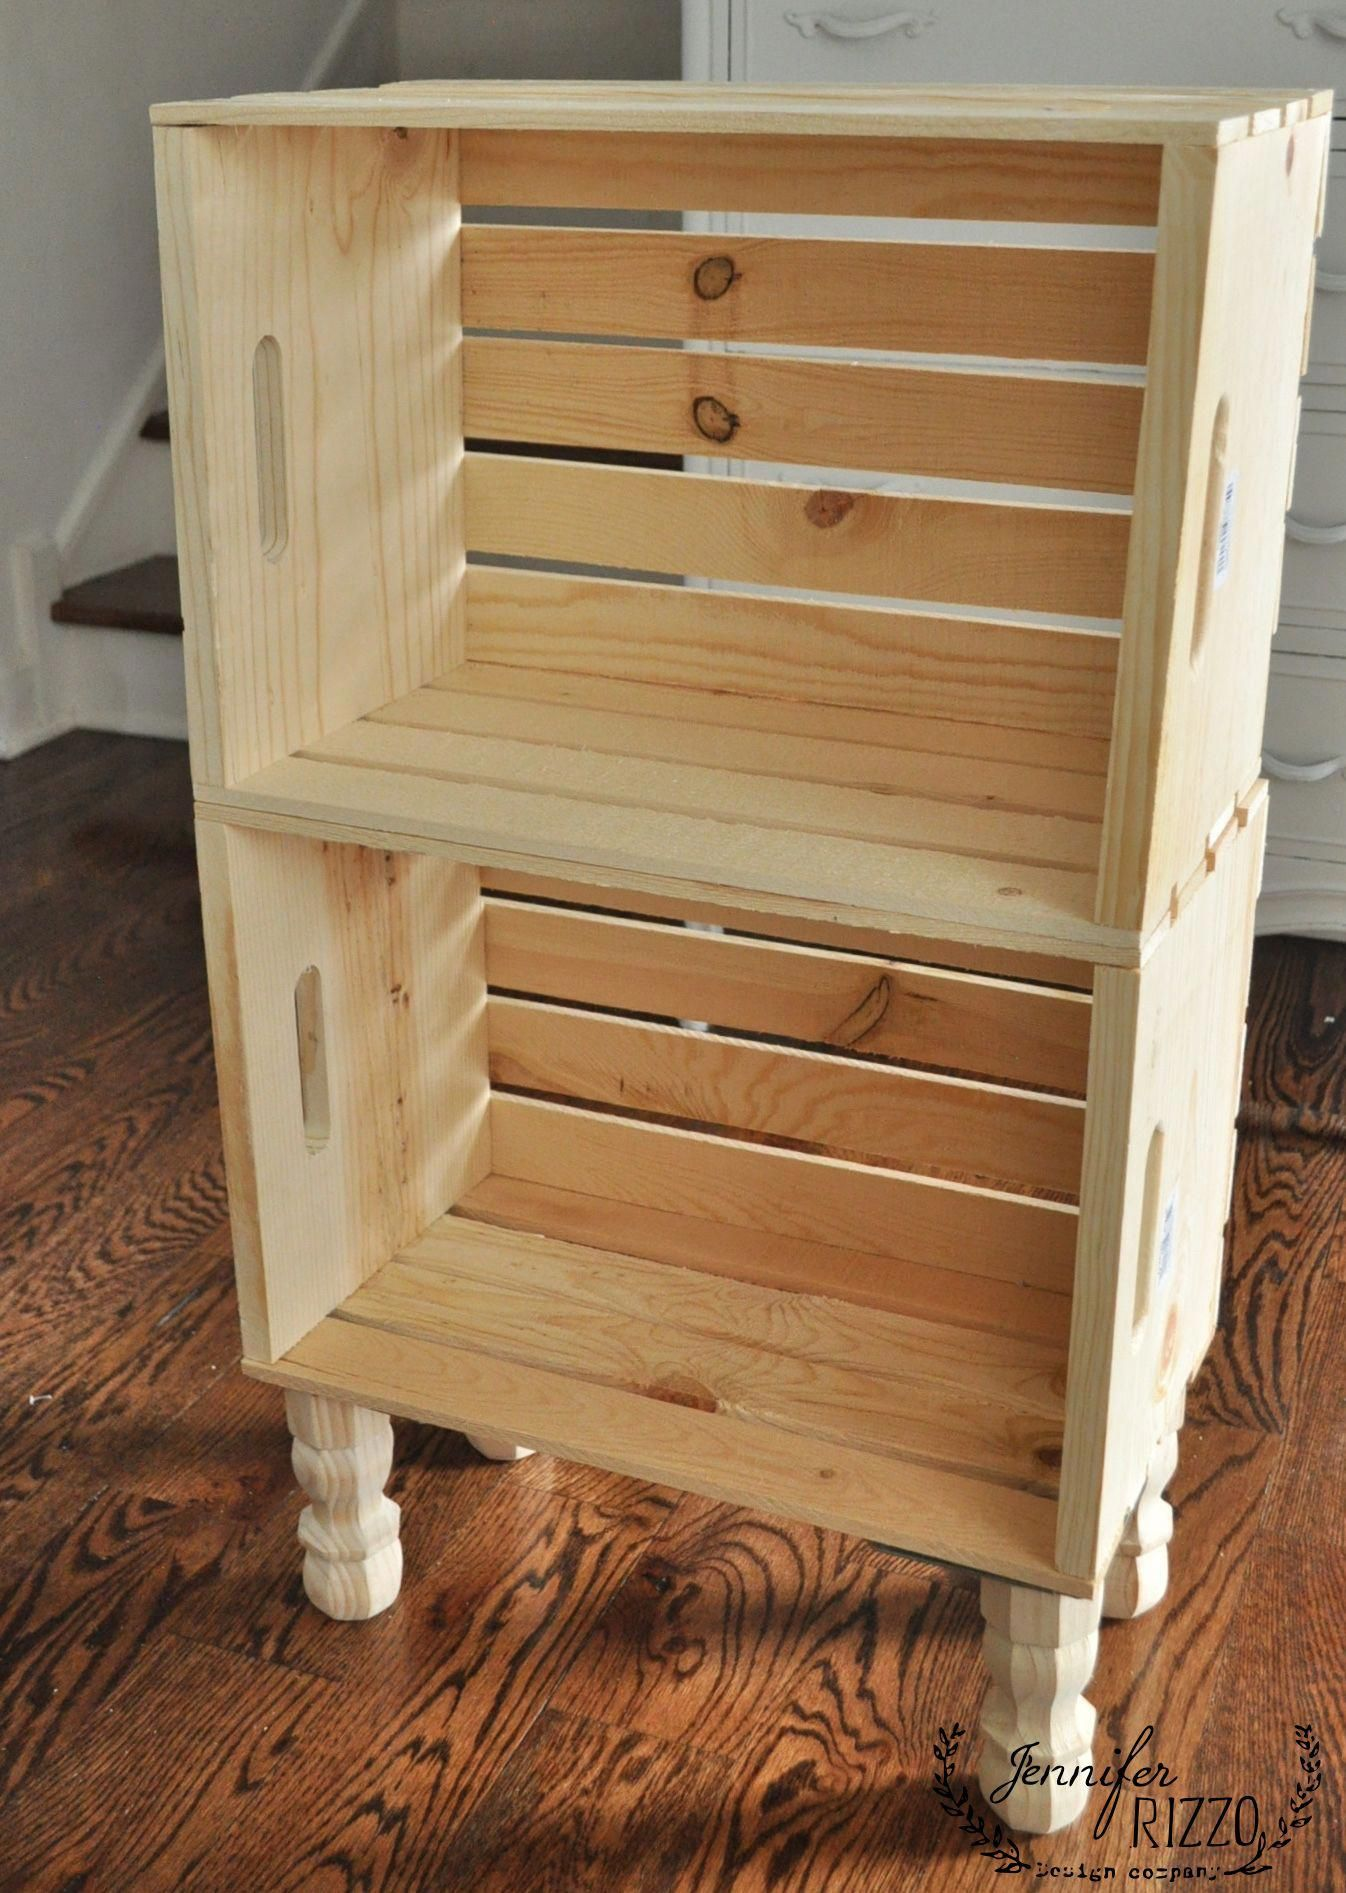 Diy side table from crates homediy crate side table